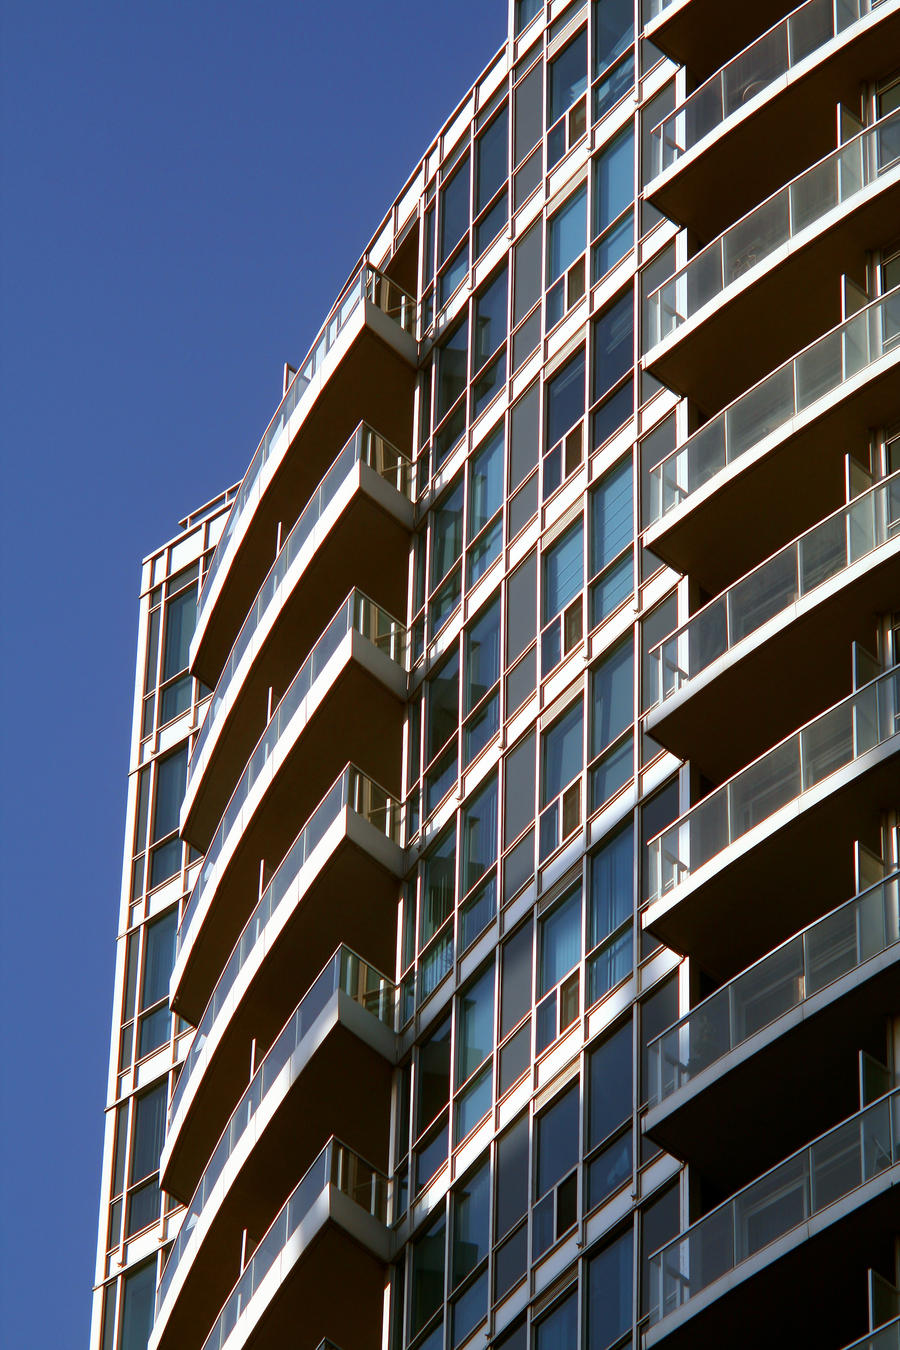 Glass and Concrete by vmulligan